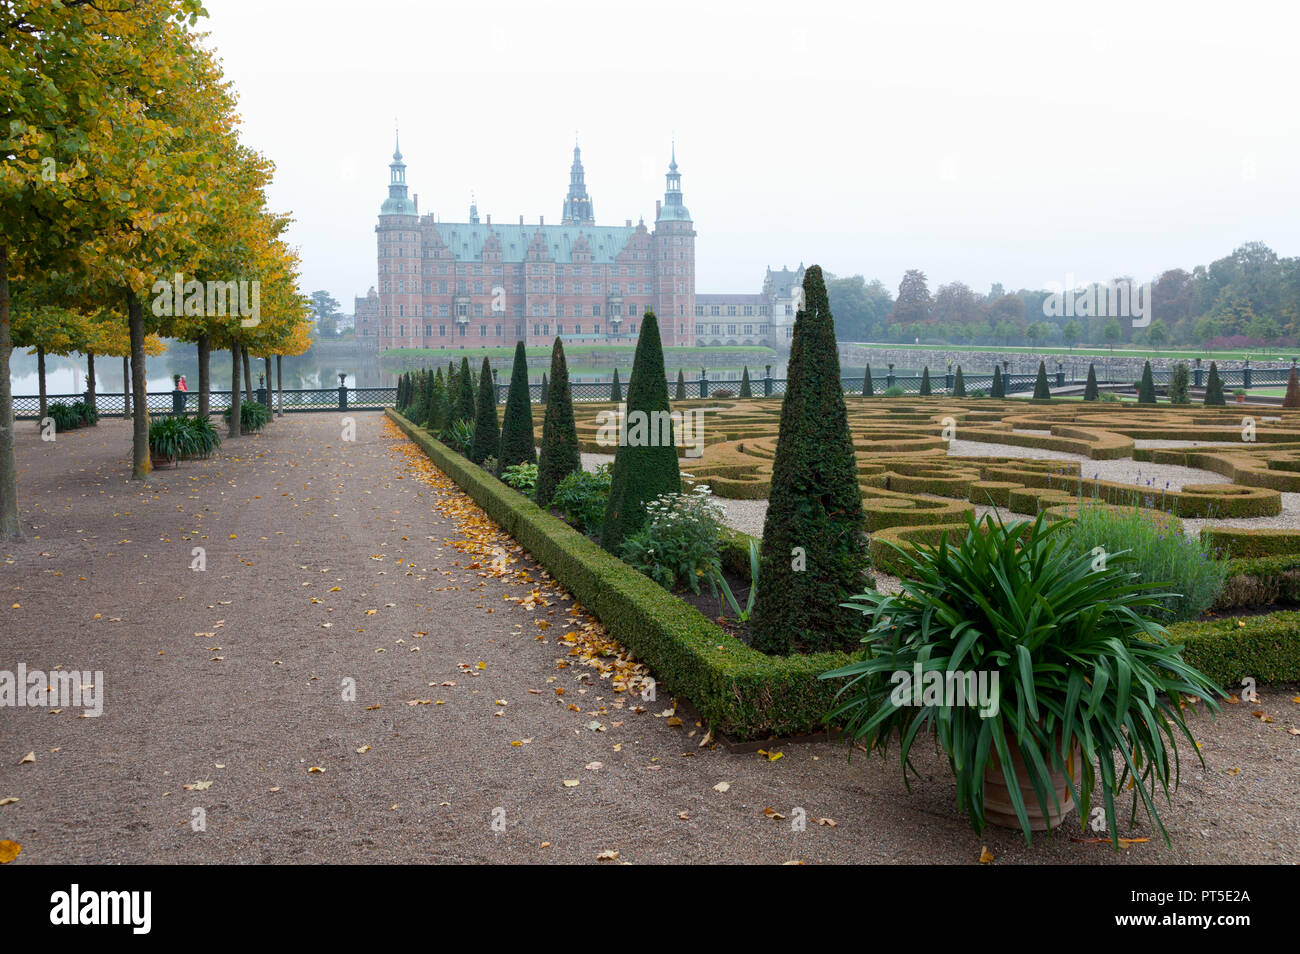 Frederiksborg Castle and the Baroque Garden in Hillerød, North Sealand, Denmark, on a foggy autumn day - Stock Image